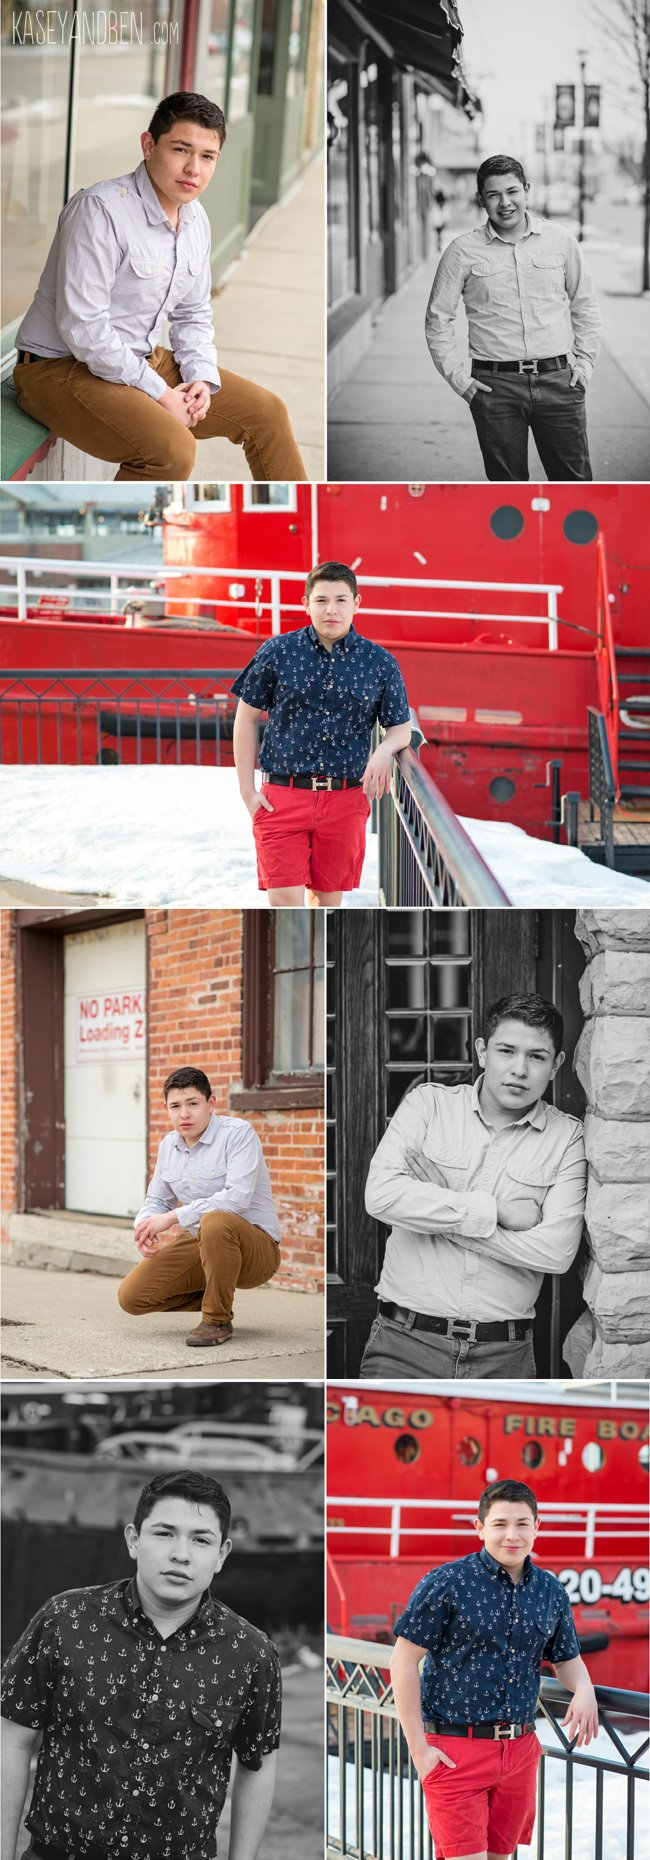 Door-County-Senior-Photos-Sturgeon-Bay-Downtown-Urban-Photographer-Pictures-Portraits-High-School-Green-Bay-Pics-Nautical